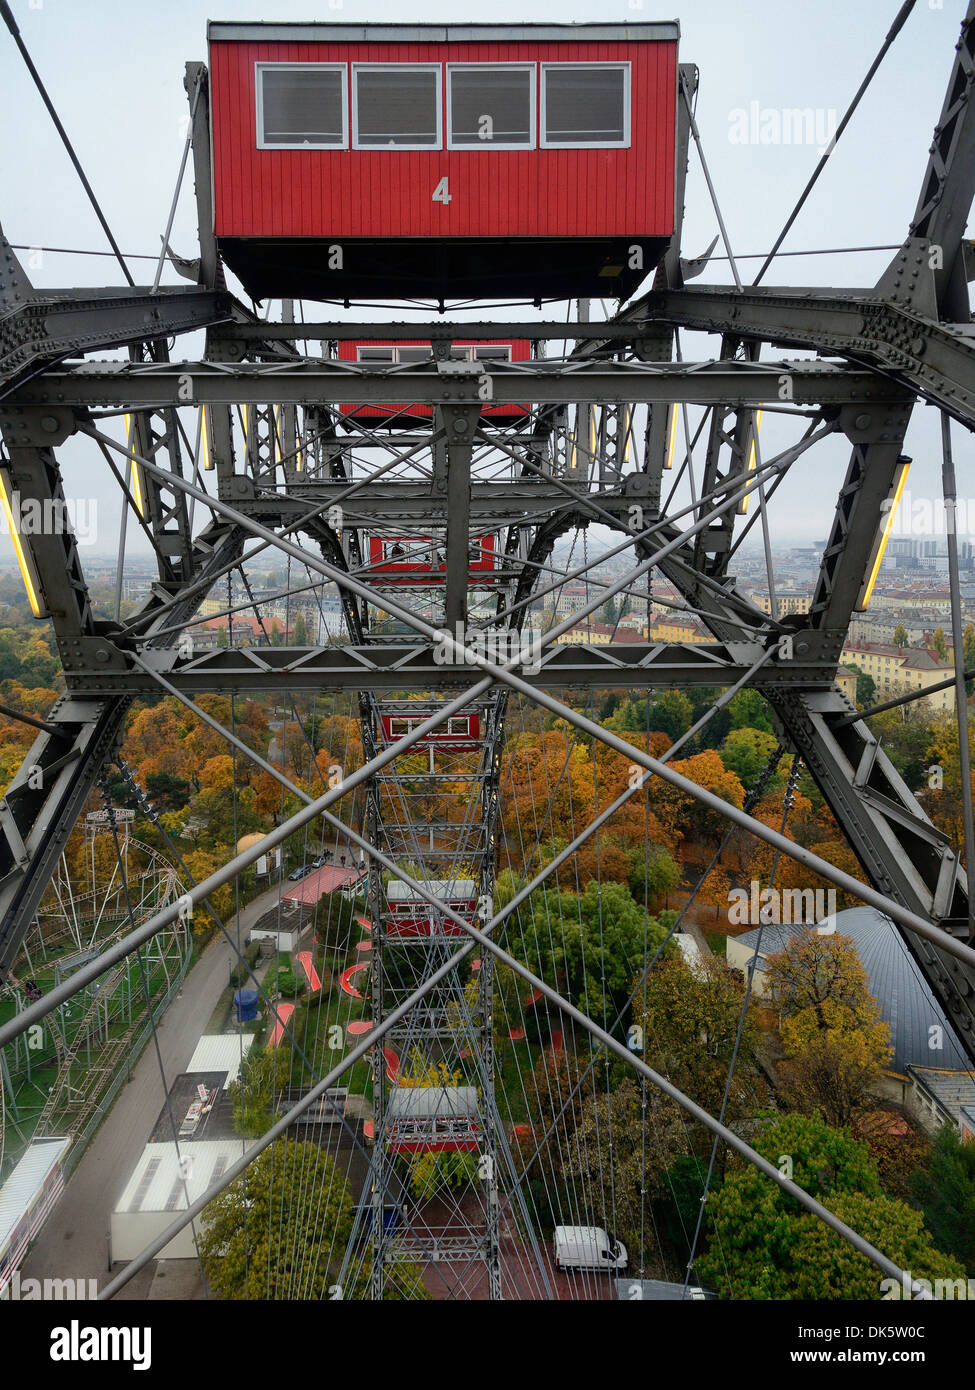 Riesenrad, Prater Wheel, Prater Park, Leopoldstadt, Vienna, Austria - featured in famous scent in the movie The Third Man - Stock Image